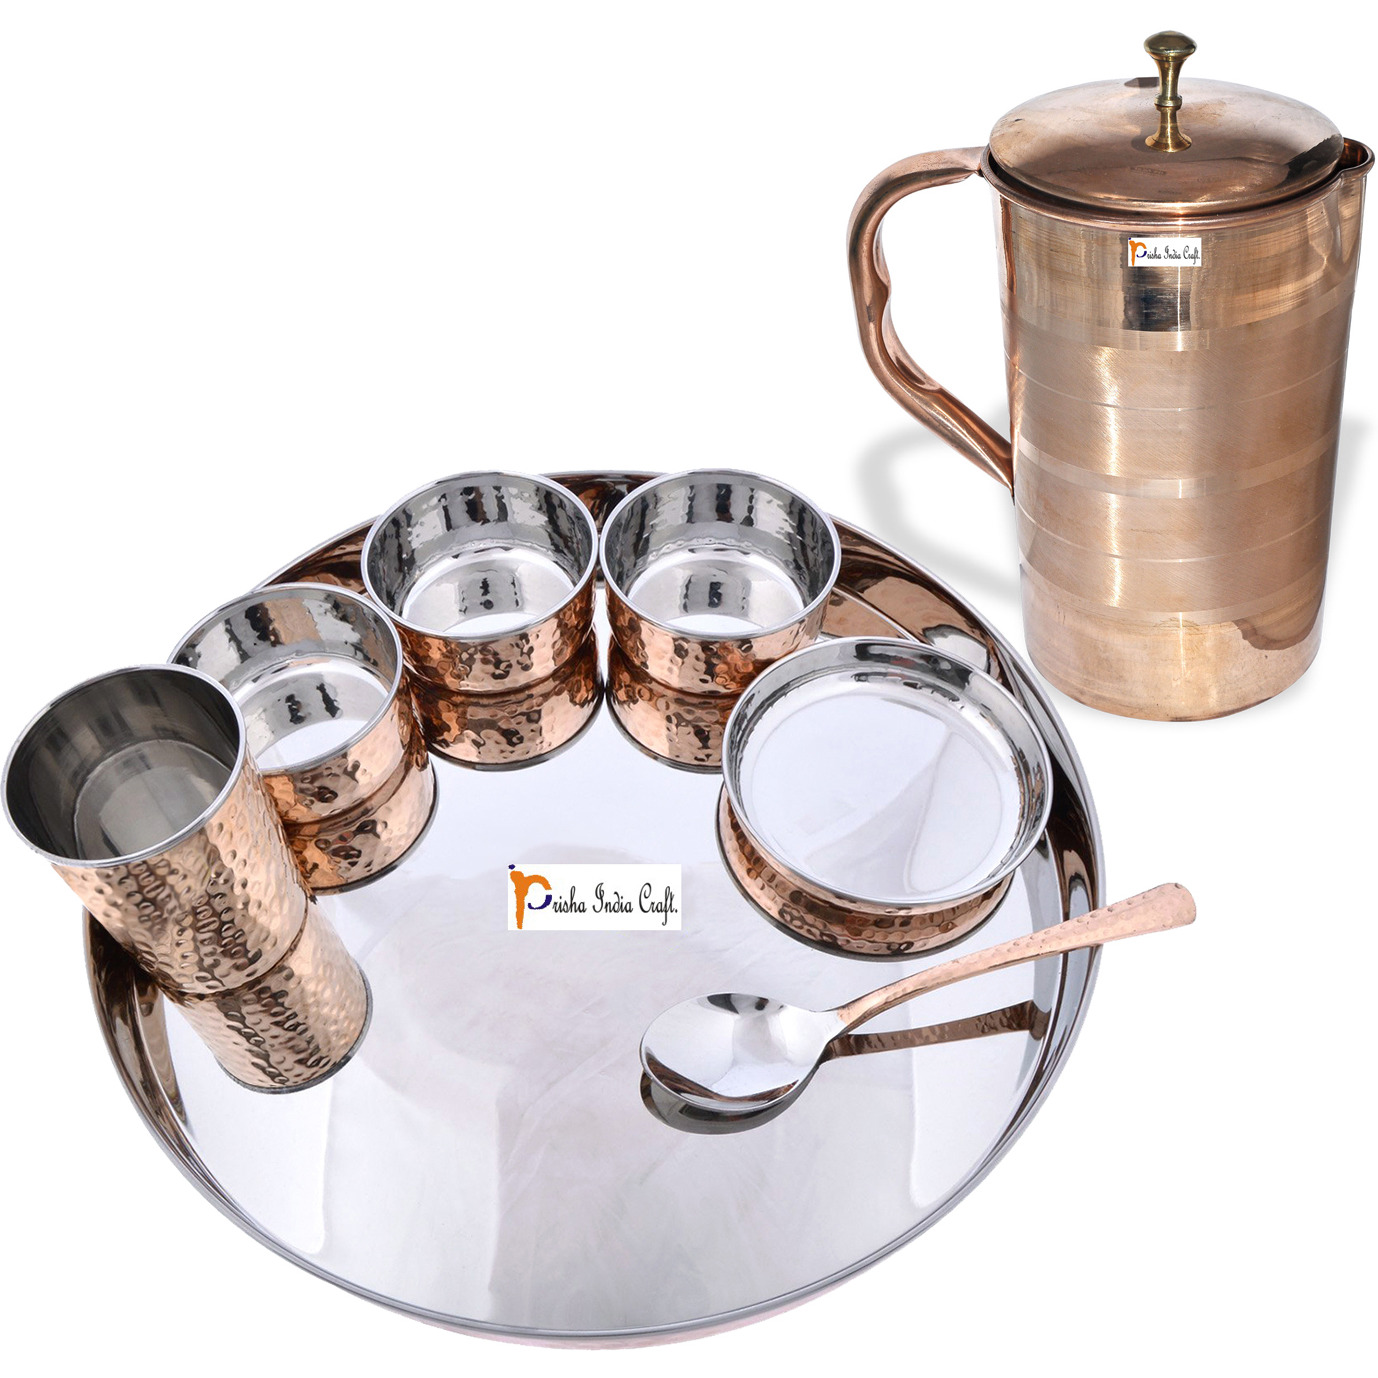 Prisha India Craft B. Dinnerware Traditional Stainless Steel Copper Dinner Set of Thali Plate, Bowls, Glass and Spoon, Dia 13  With 1 Luxury Style Pure Copper Pitcher Jug - Christmas Gift